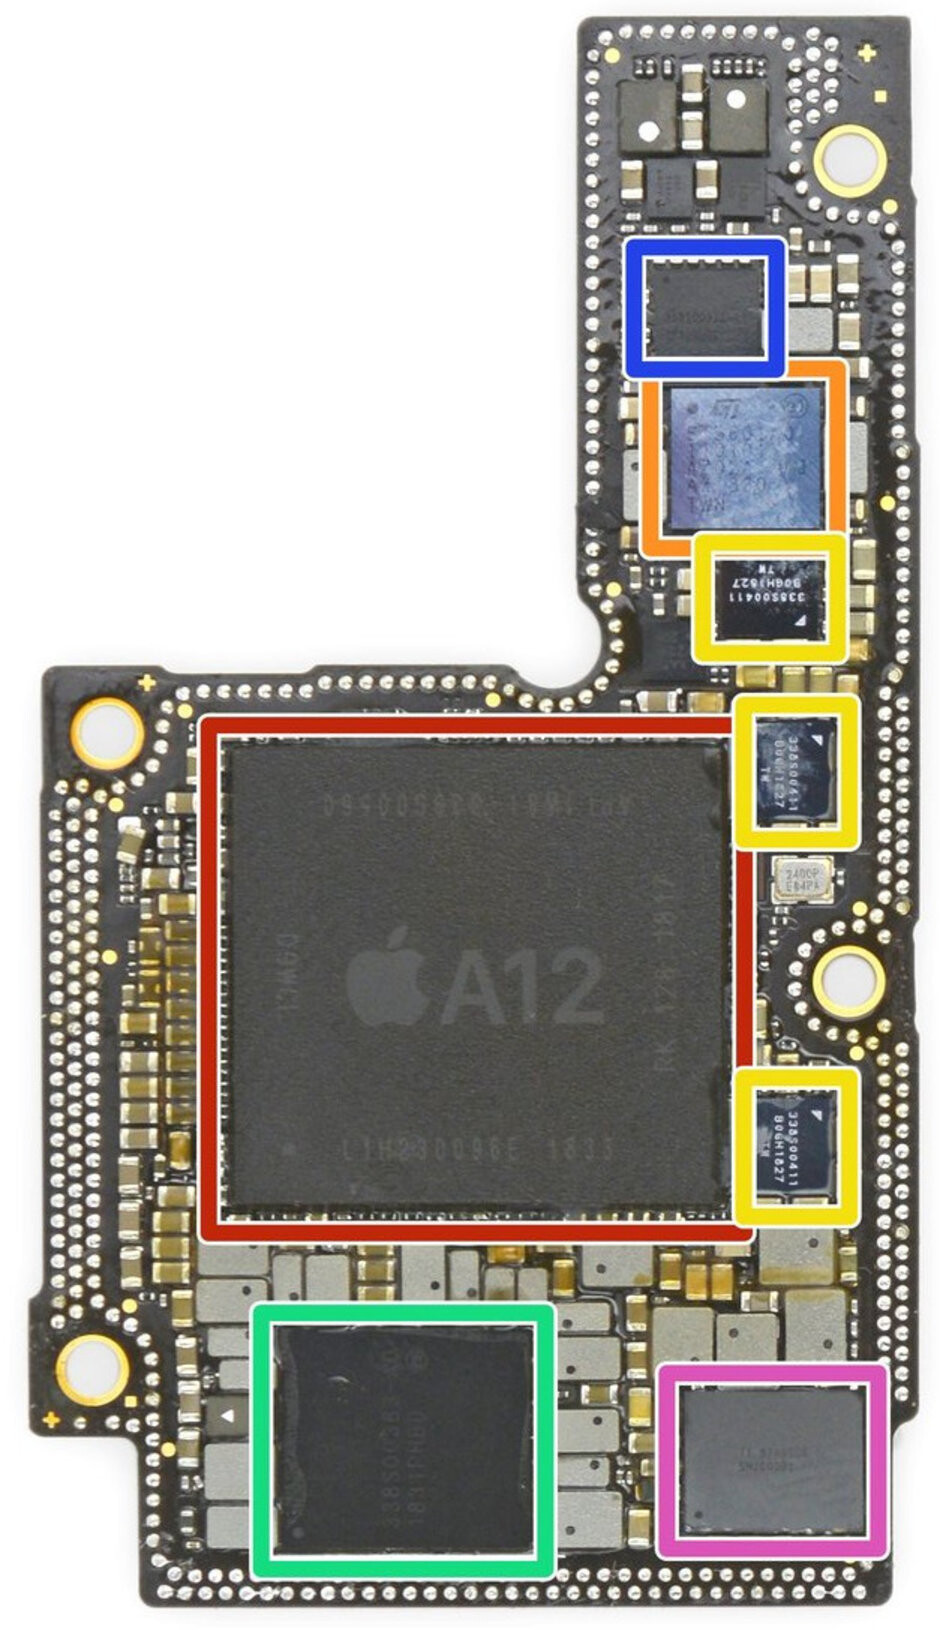 iFixit reveals the L-shaped iPhones XS motherboard - Repair shop leaks the 2019 iPhone logic board, hinting at big changes under the hood